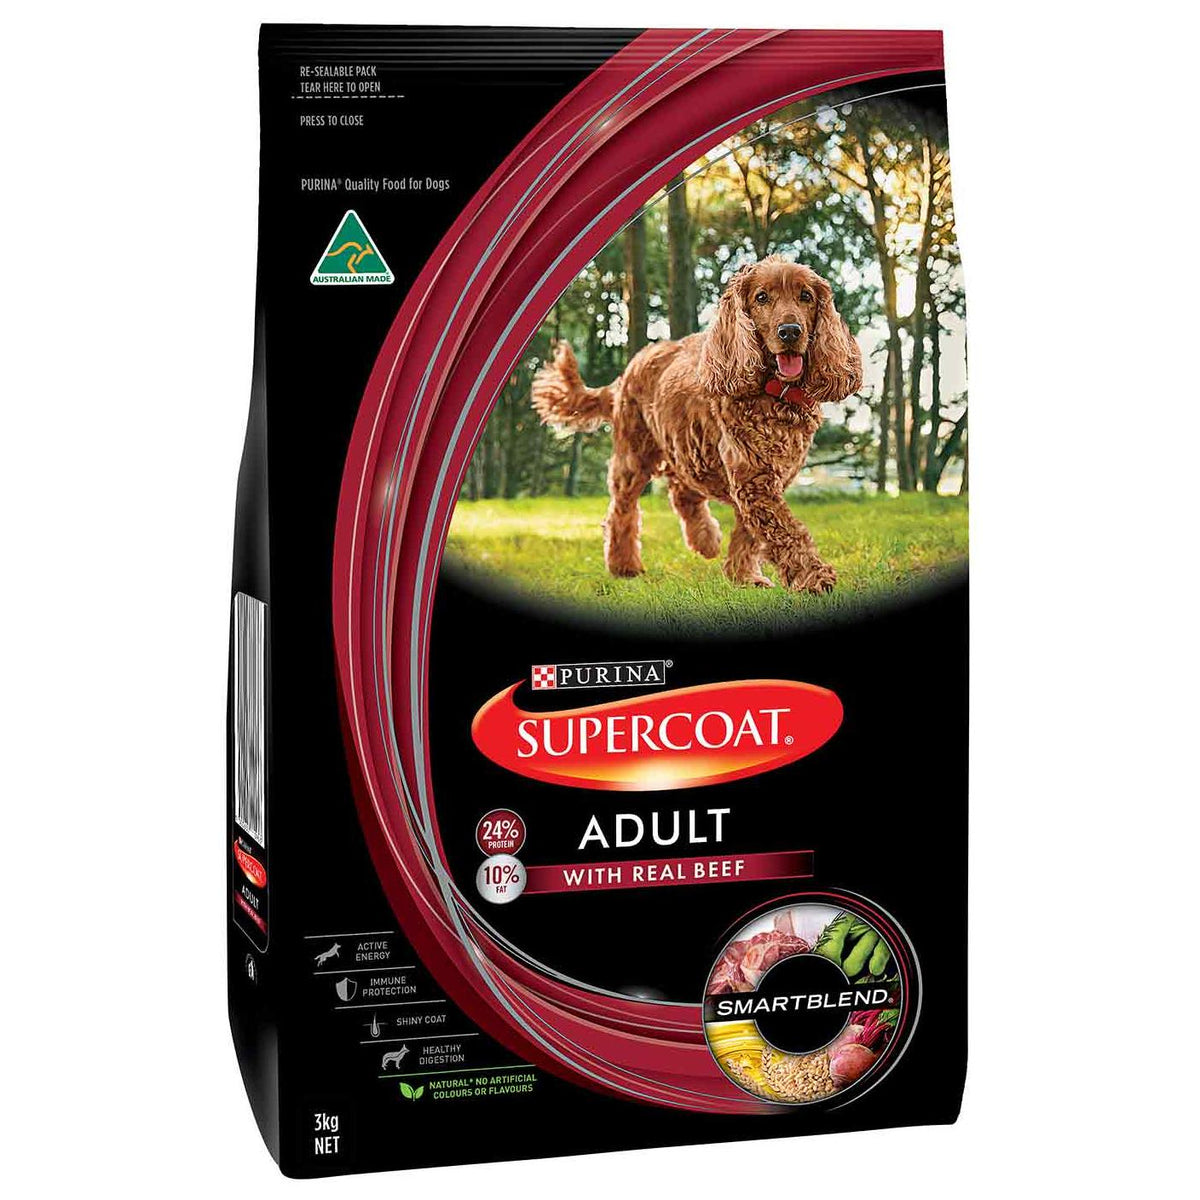 Supercoat Smartblend Adult Beef Dry Dog Food